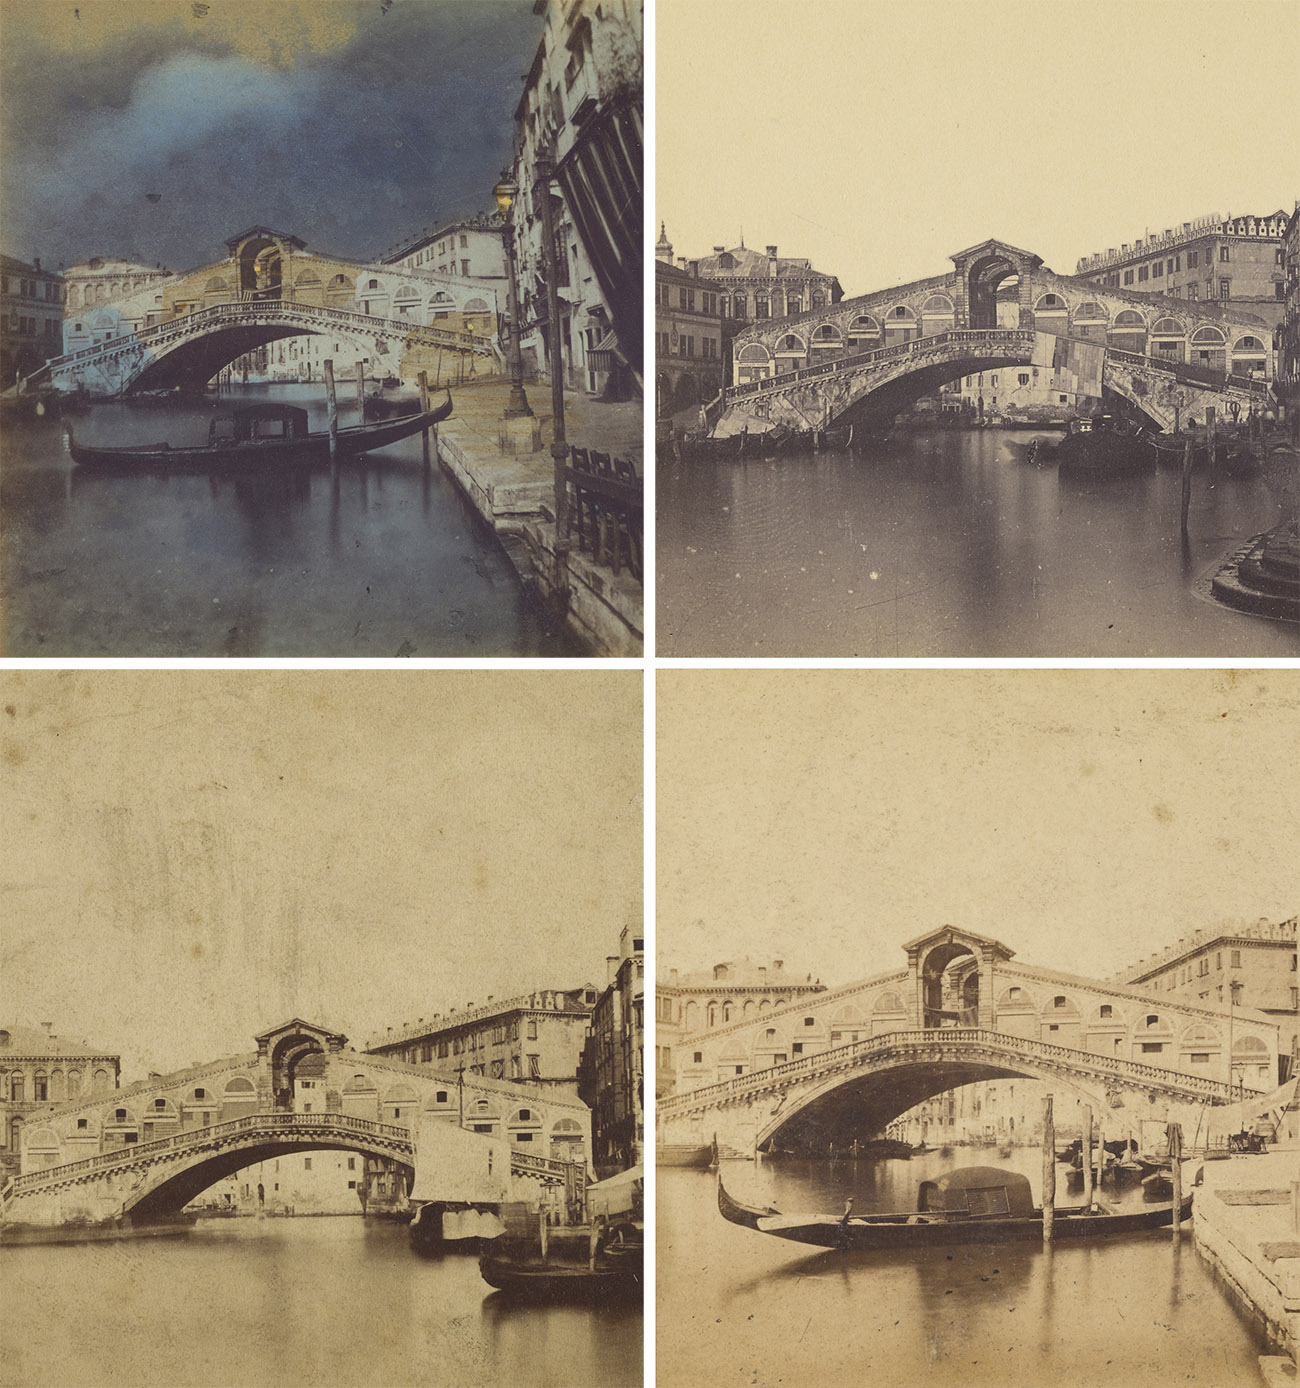 Clockwise: Detail of Rialto Bridge, Venice, about 1865, Italian. Hand-colored albumen silver print. The J. Paul Getty Museum, 84.XC.873.5379. Detail of Ponte di Rialto, about 1865, Italian. Albumen silver print. The J. Paul Getty Museum, 84.XC.873.5200. Detail of Bridge of the Rialto. - Venice, 1857 - 1860, Claudius E. Goodman. Albumen silver print. The J. Paul Getty Museum, 84.XC.979.448. Detail of Rialto Bridge, 1870s, Carlo Ponti. Albumen silver print. The J. Paul Getty Museum, 84.XC.873.8350.